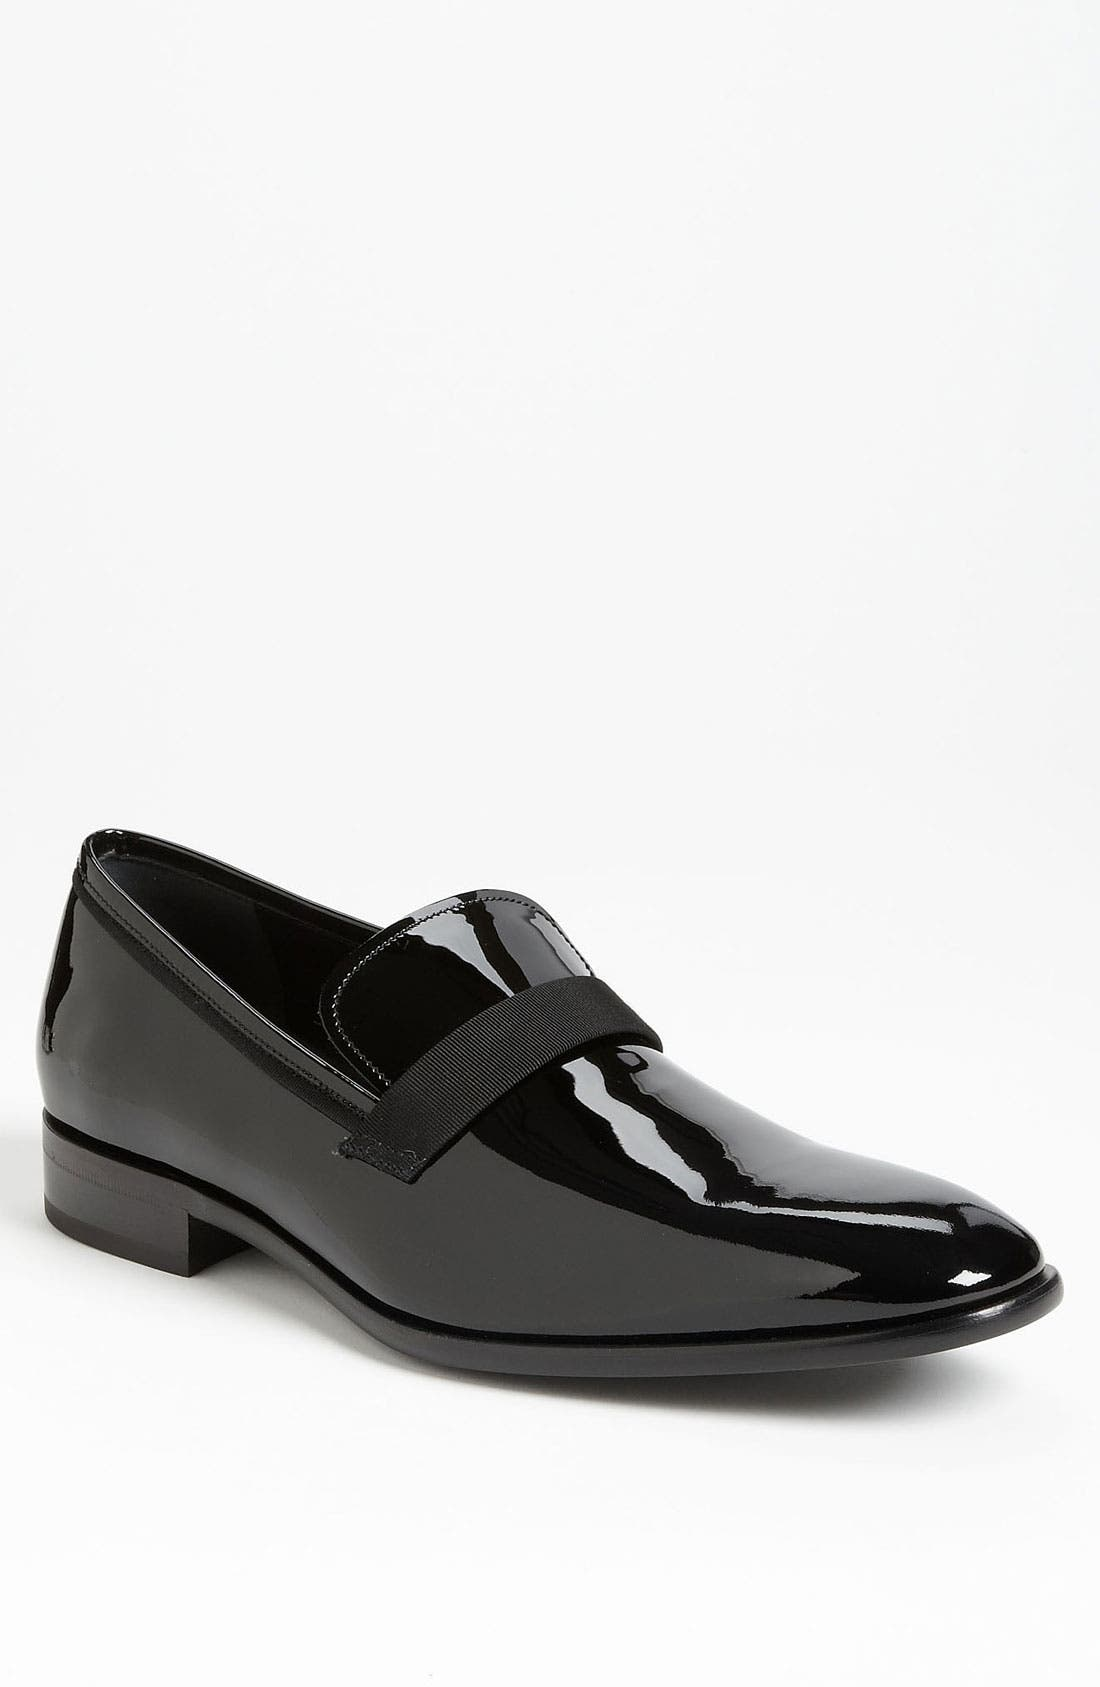 Main Image - Salvatore Ferragamo 'Antoane' Formal Loafer